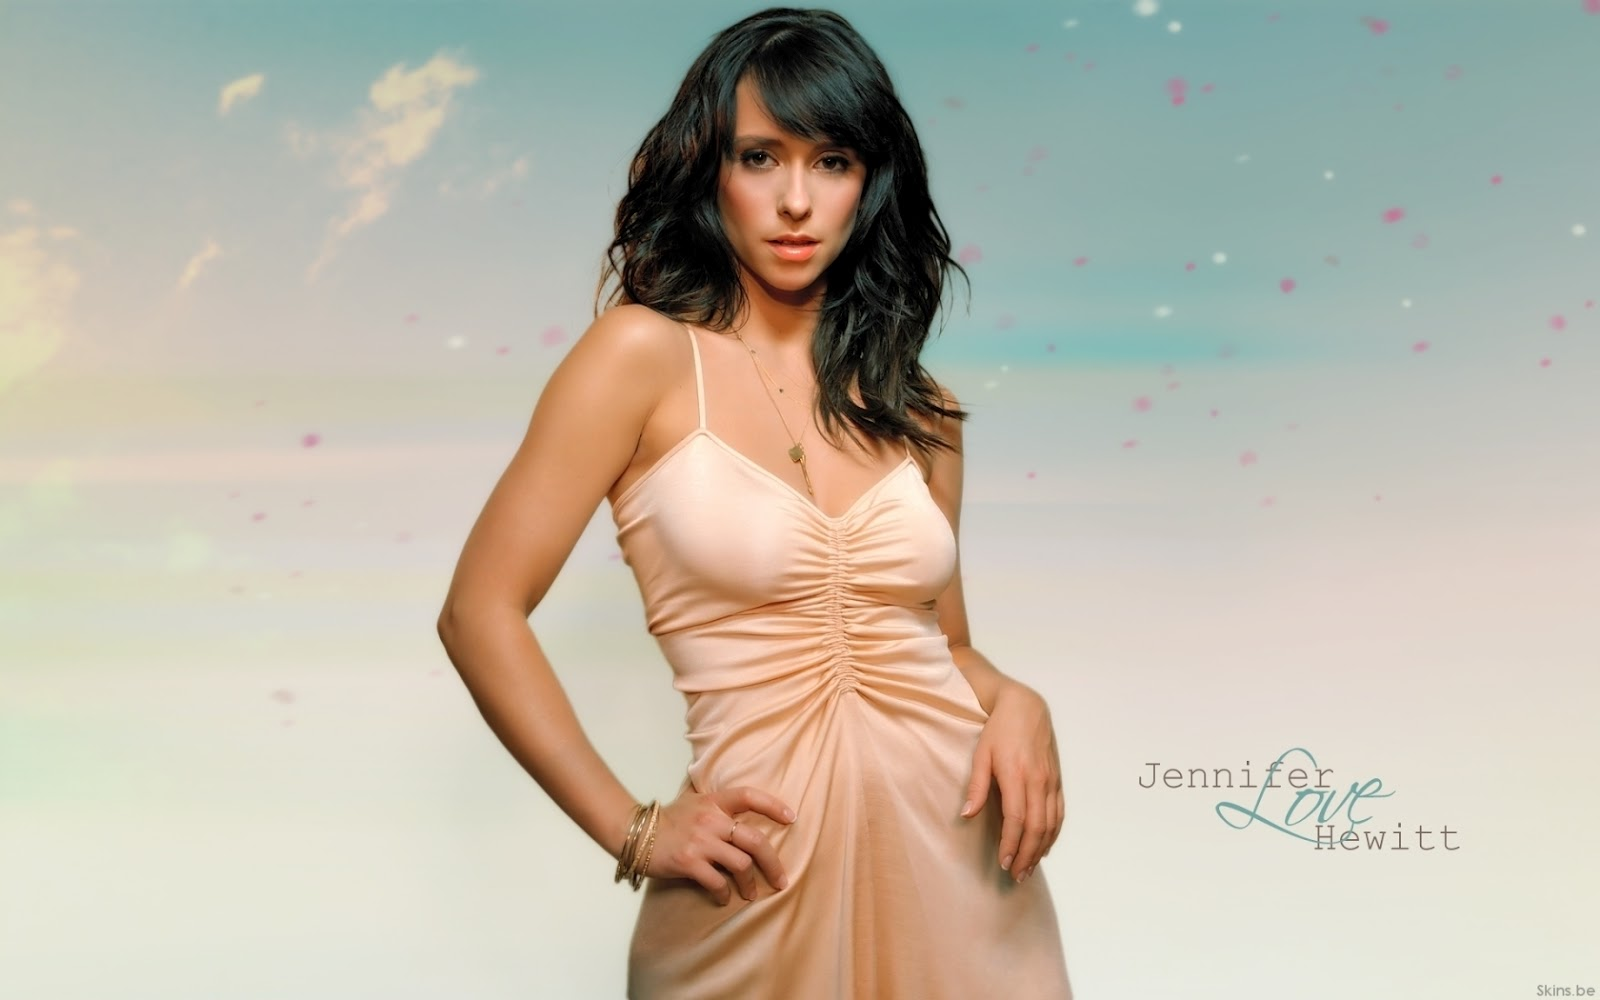 http://3.bp.blogspot.com/-agVwgdO8GQM/UDiArPW8wbI/AAAAAAAAOOY/DTNU-6in2g0/s1600/Jennifer-at-a-Party-in-the-Clouds-1680x1050-jennifer-love-hewitt-6974636-1680-1050.jpg